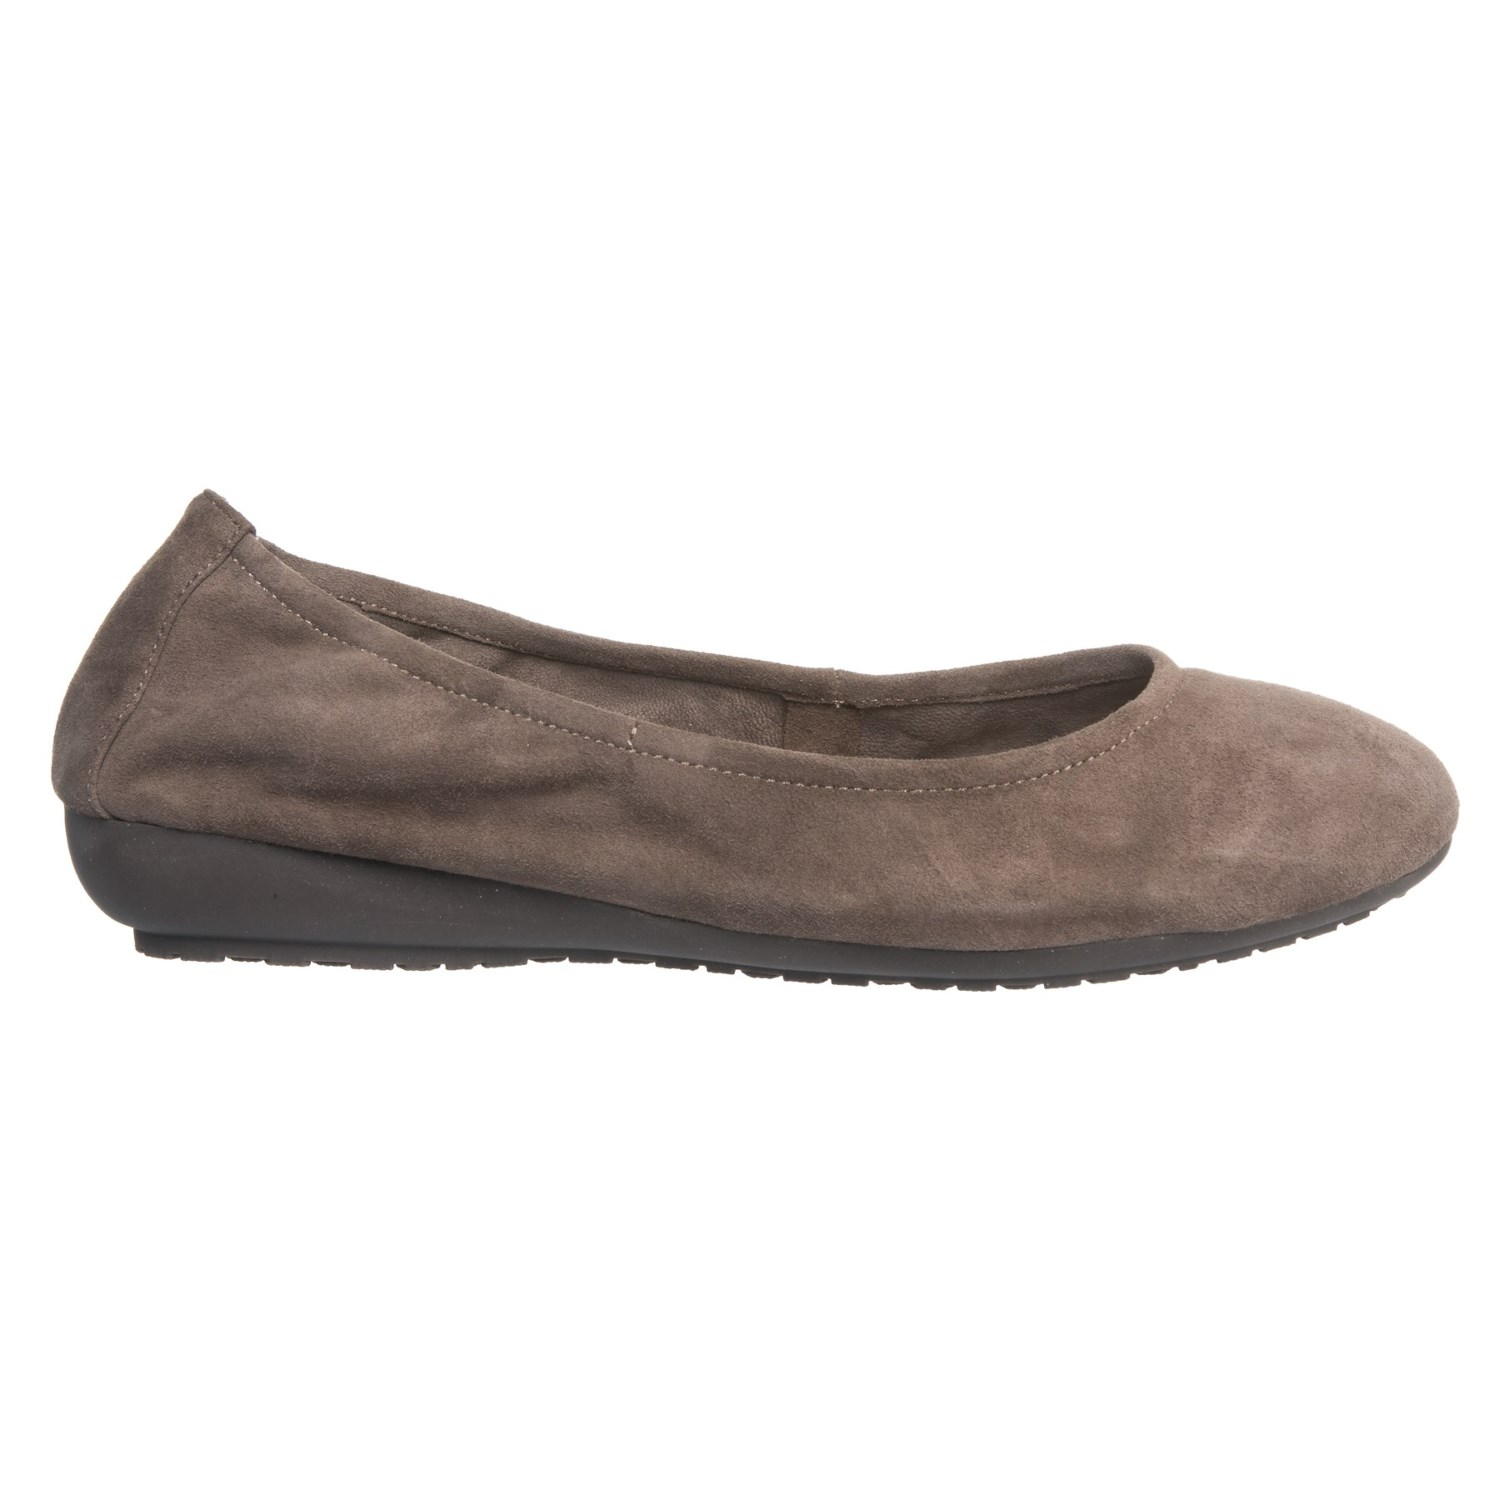 473d0e4cc53 Me Too Janell Ballet Flats (For Women) - Save 60%